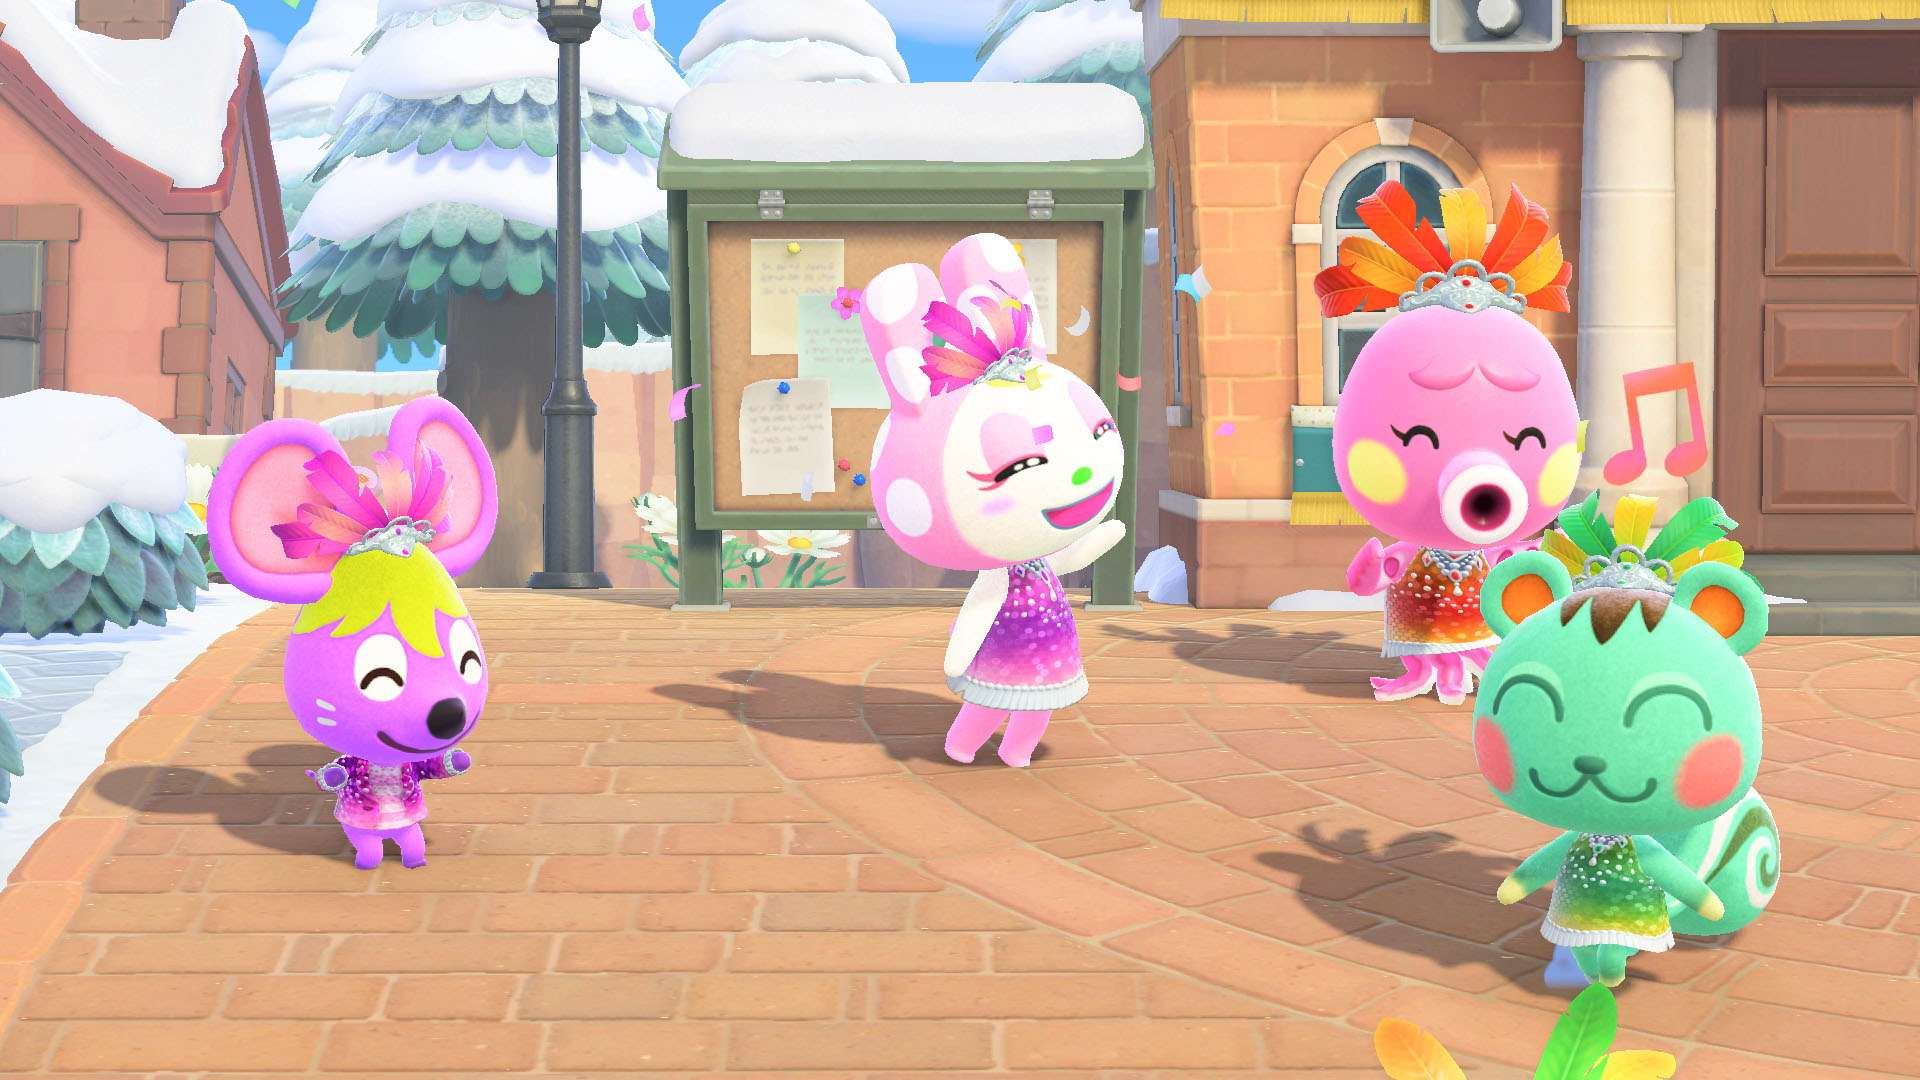 Animal Crossing New Horizons Carnaval Actualizacion 3 - El Carnaval llega a Animal Crossing: New Horizons